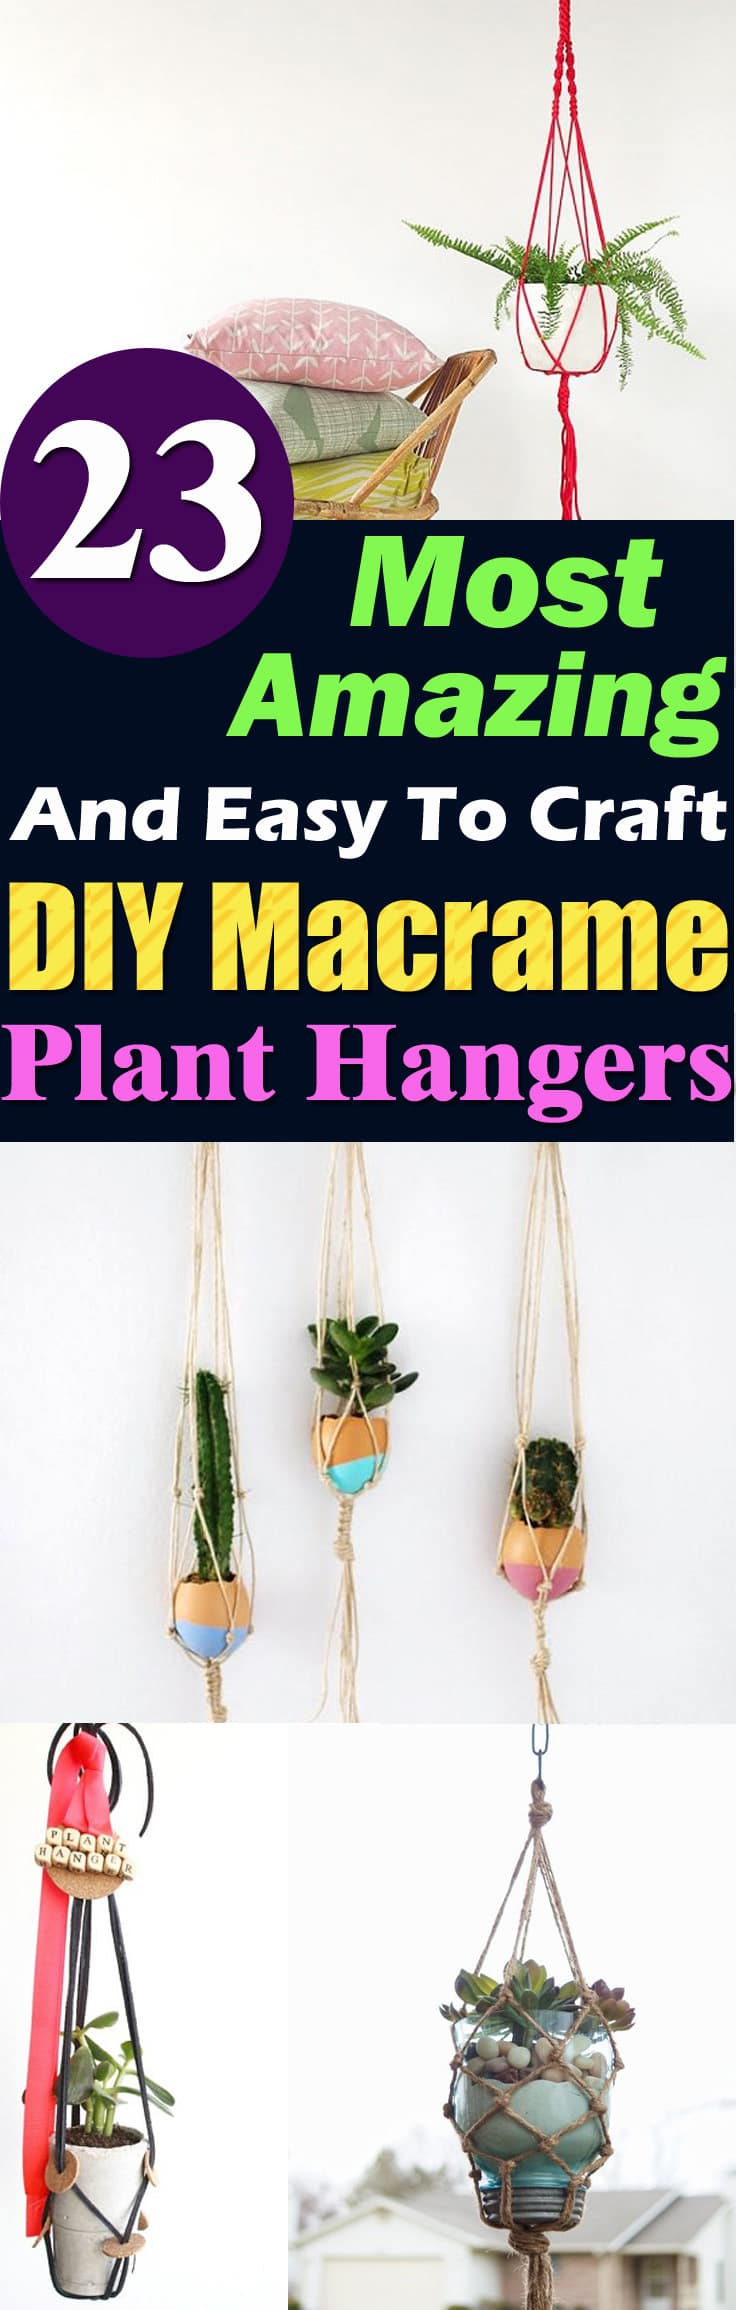 Macrame plant hangers are becoming popular, they're a stylish way to create hanging planters out of ordinary pots!